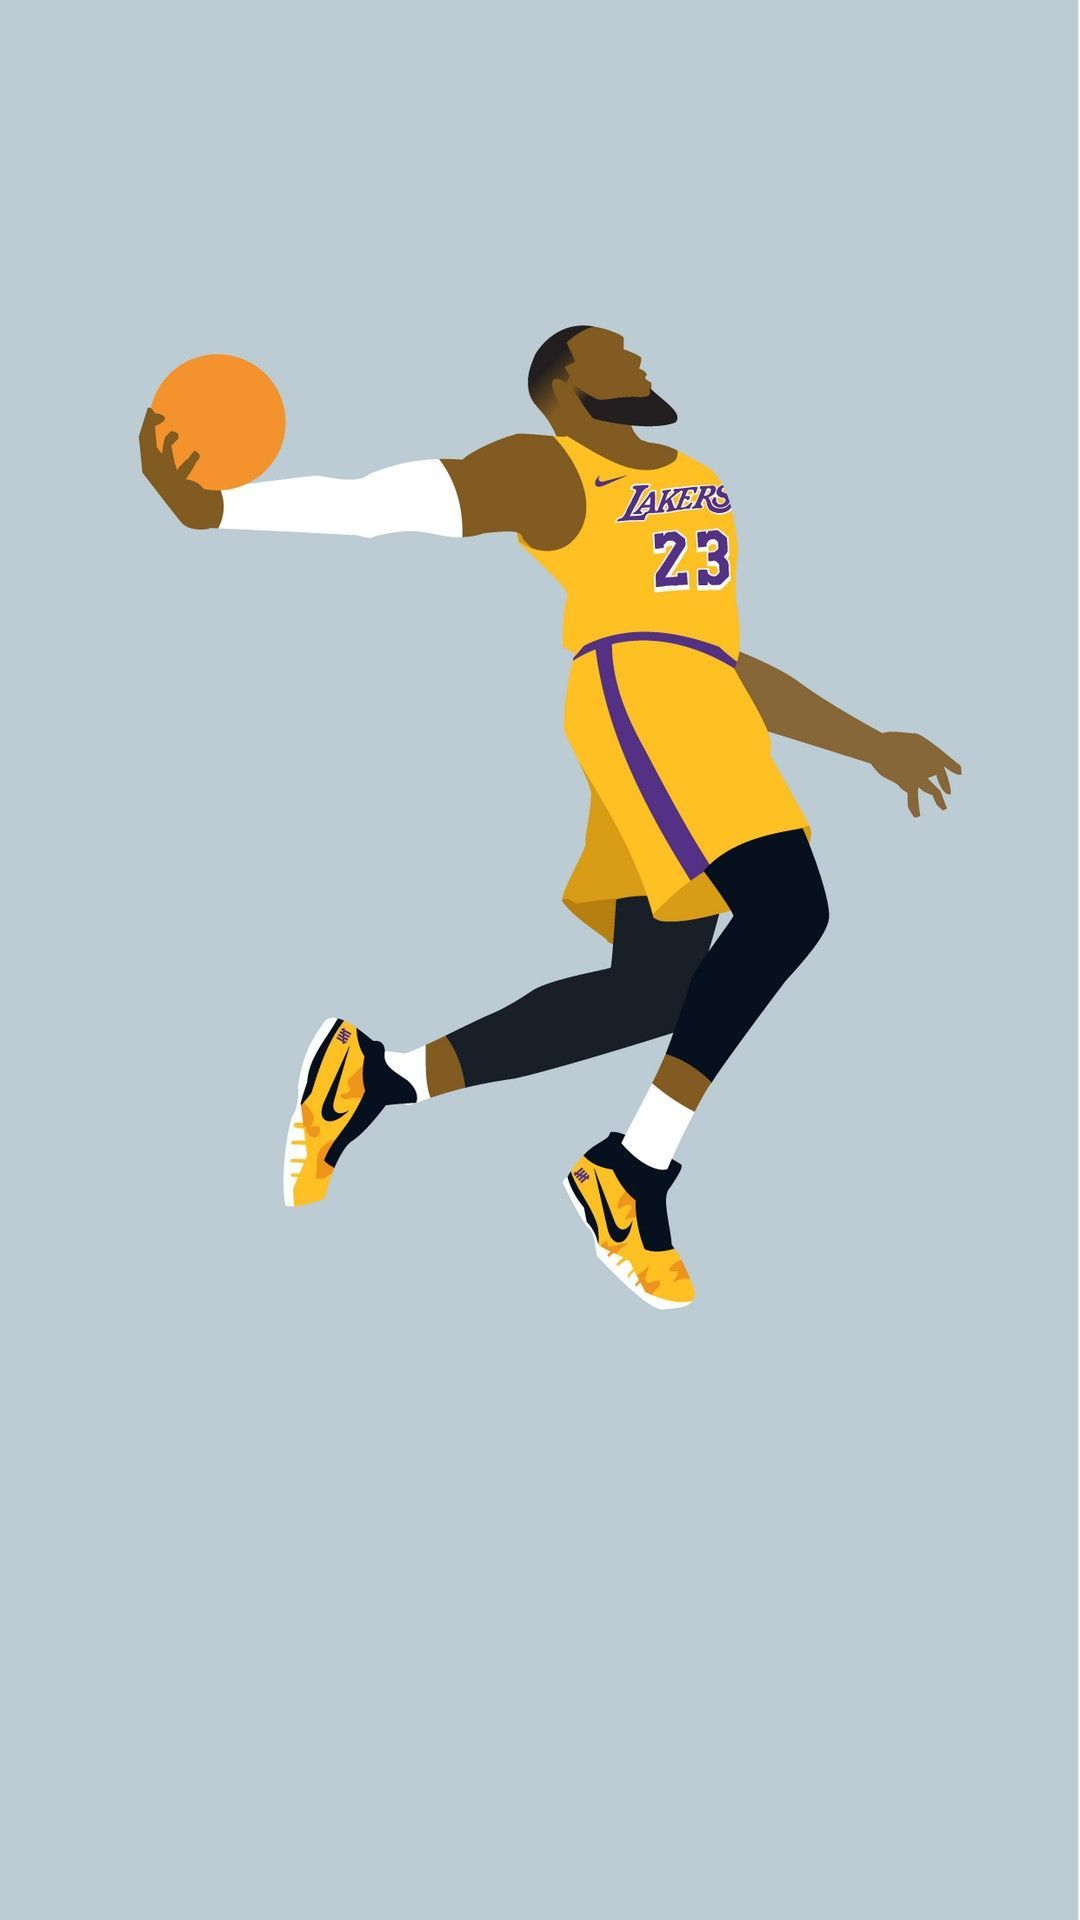 iPhone Wallpaper HD LeBron James LA Lakers Iphone